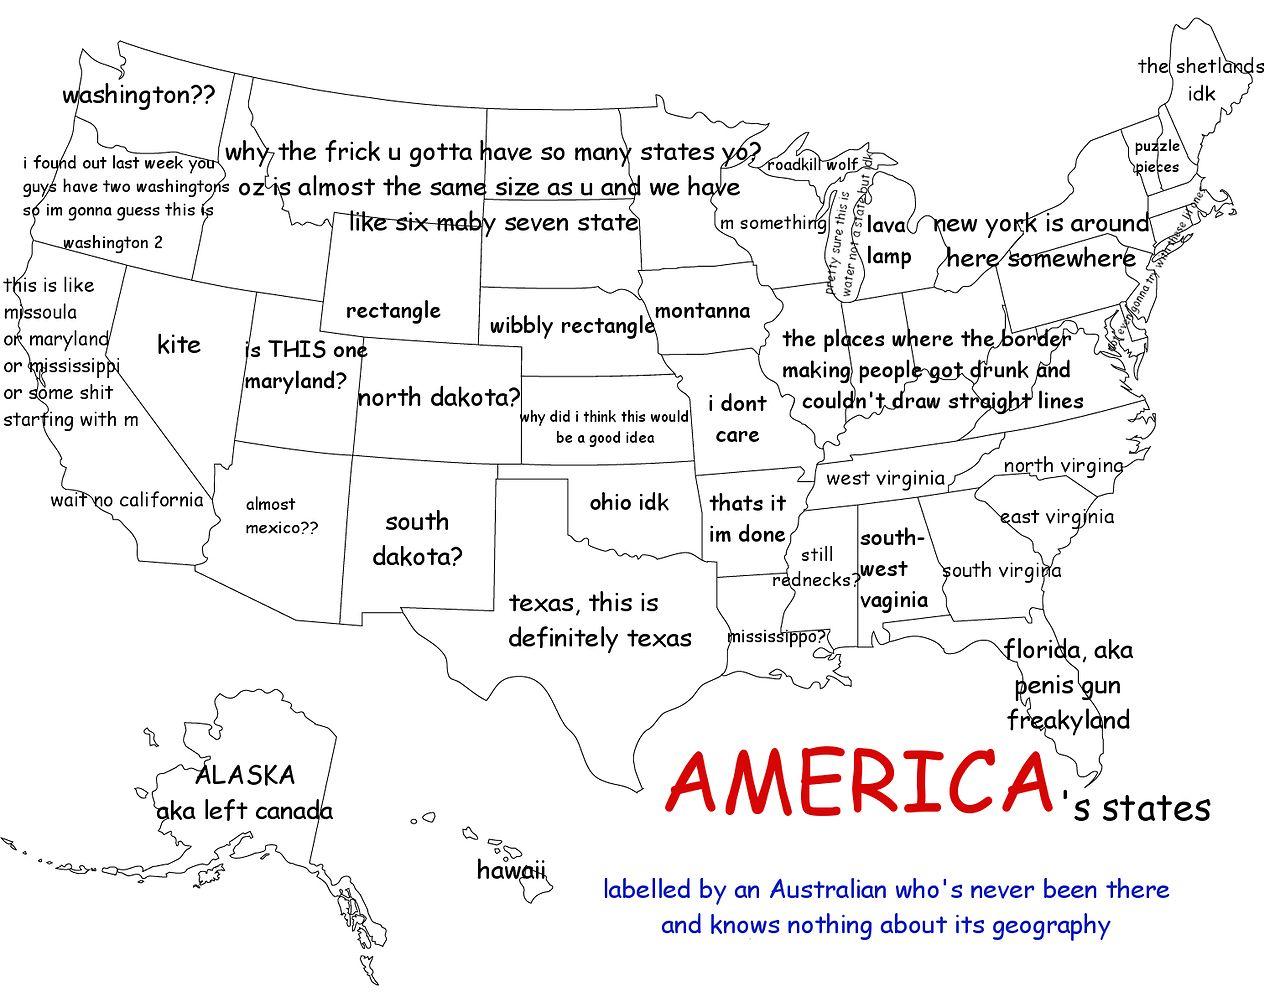 US And Canada Printable Blank Maps Royalty Free Clip Art North - Labeled map of the usa